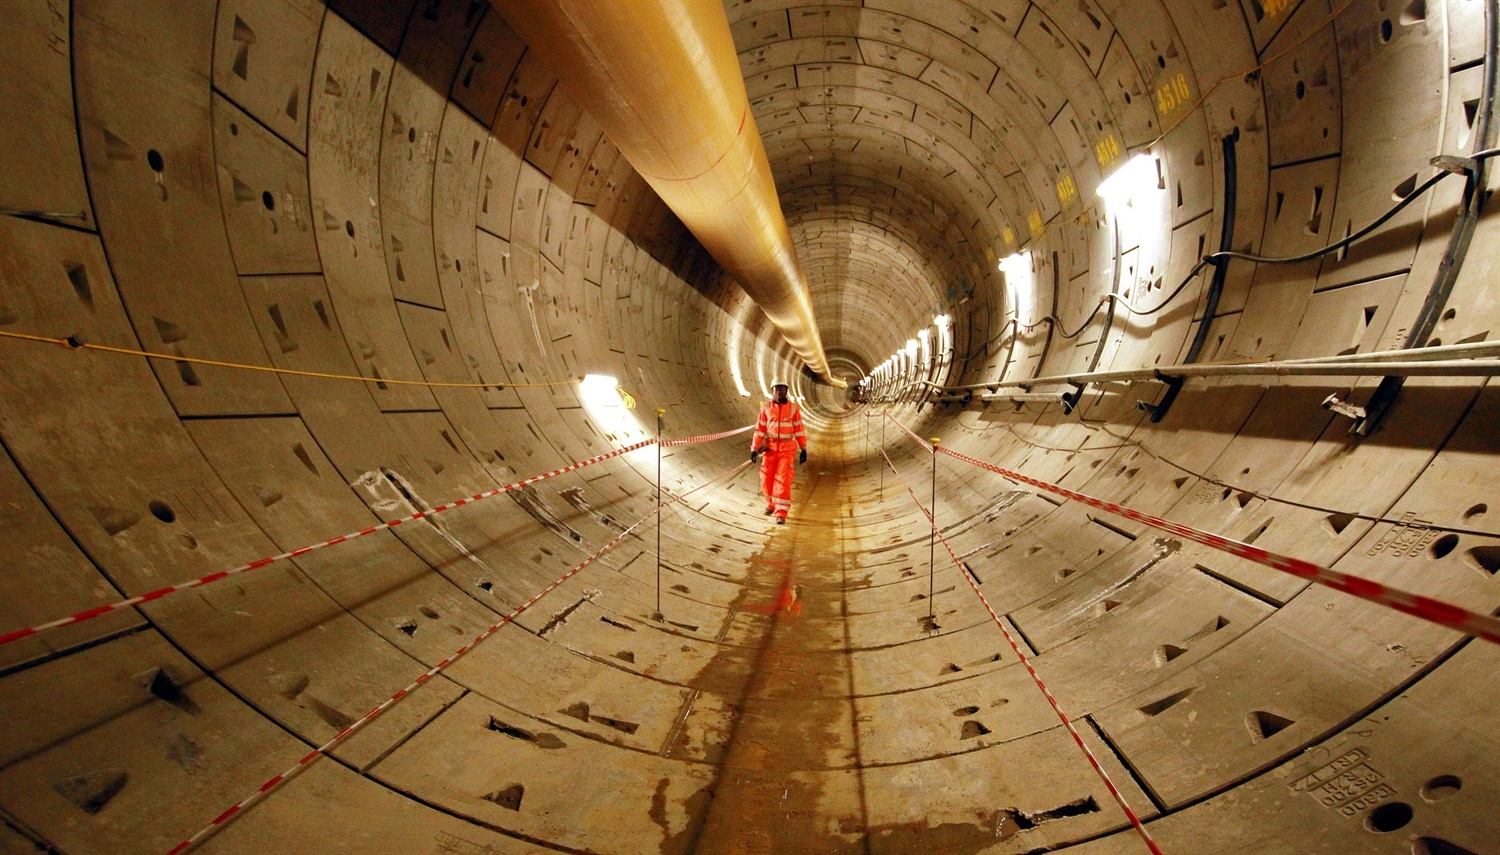 Government indicates support for Crossrail to Ebbsfleet extension with £5m feasibility funding